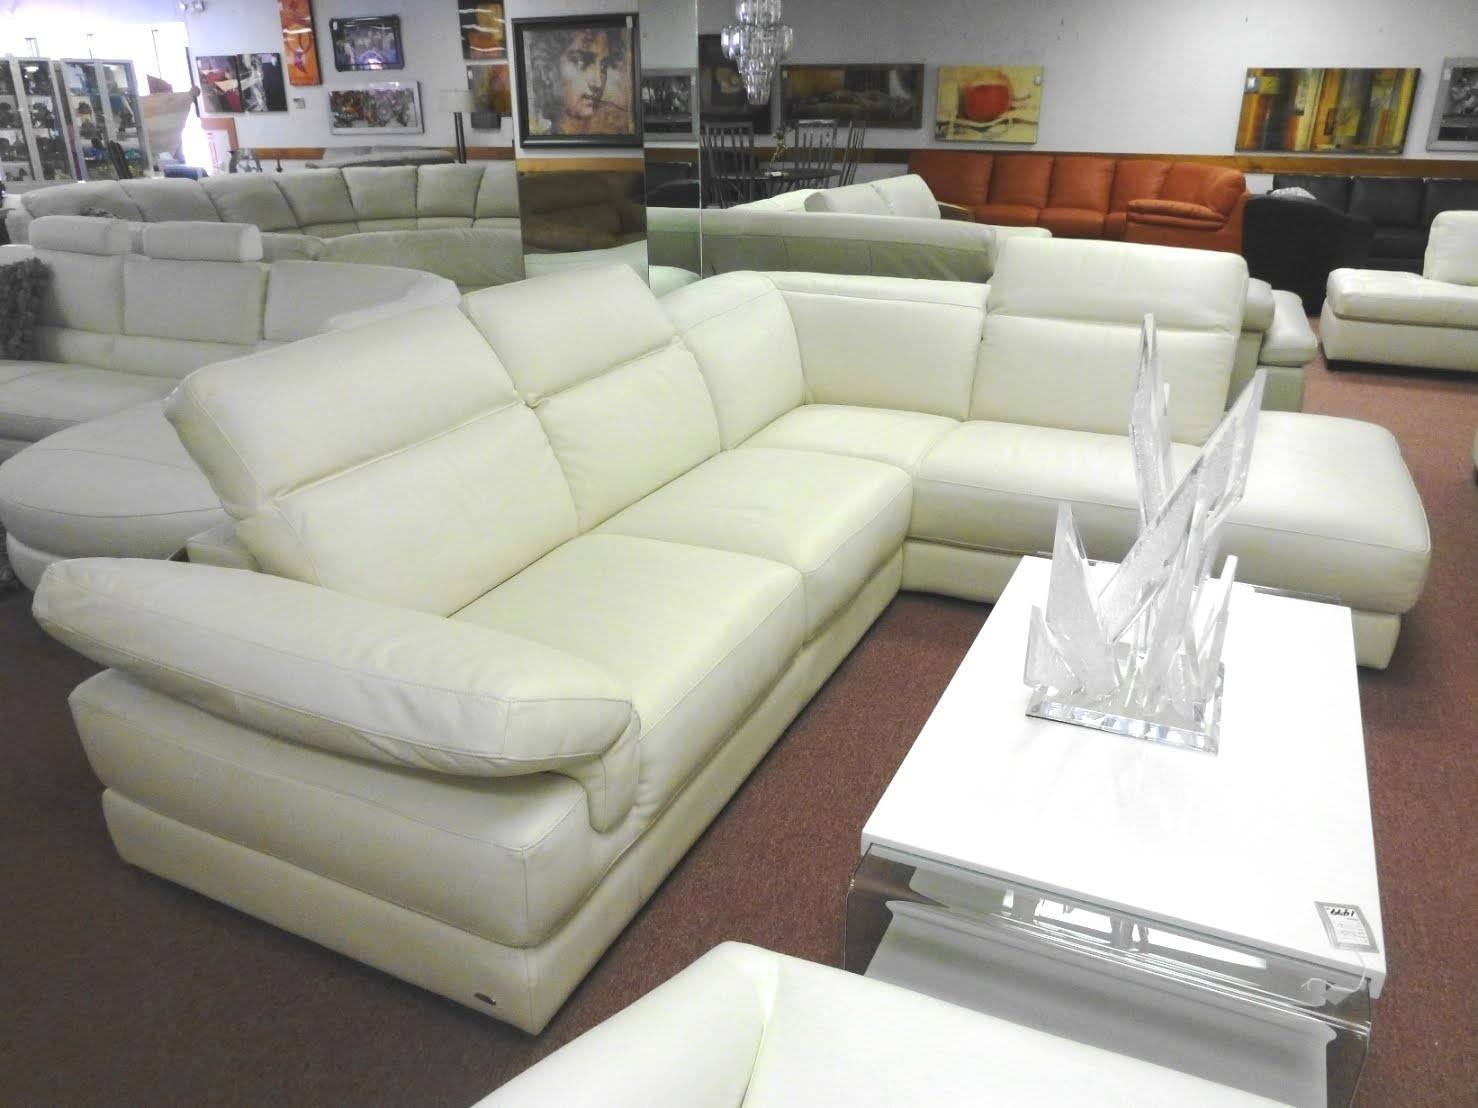 Natuzi Sofas Wonderful Home Design with regard to Natuzzi Microfiber Sectional Sofas (Image 3 of 15)